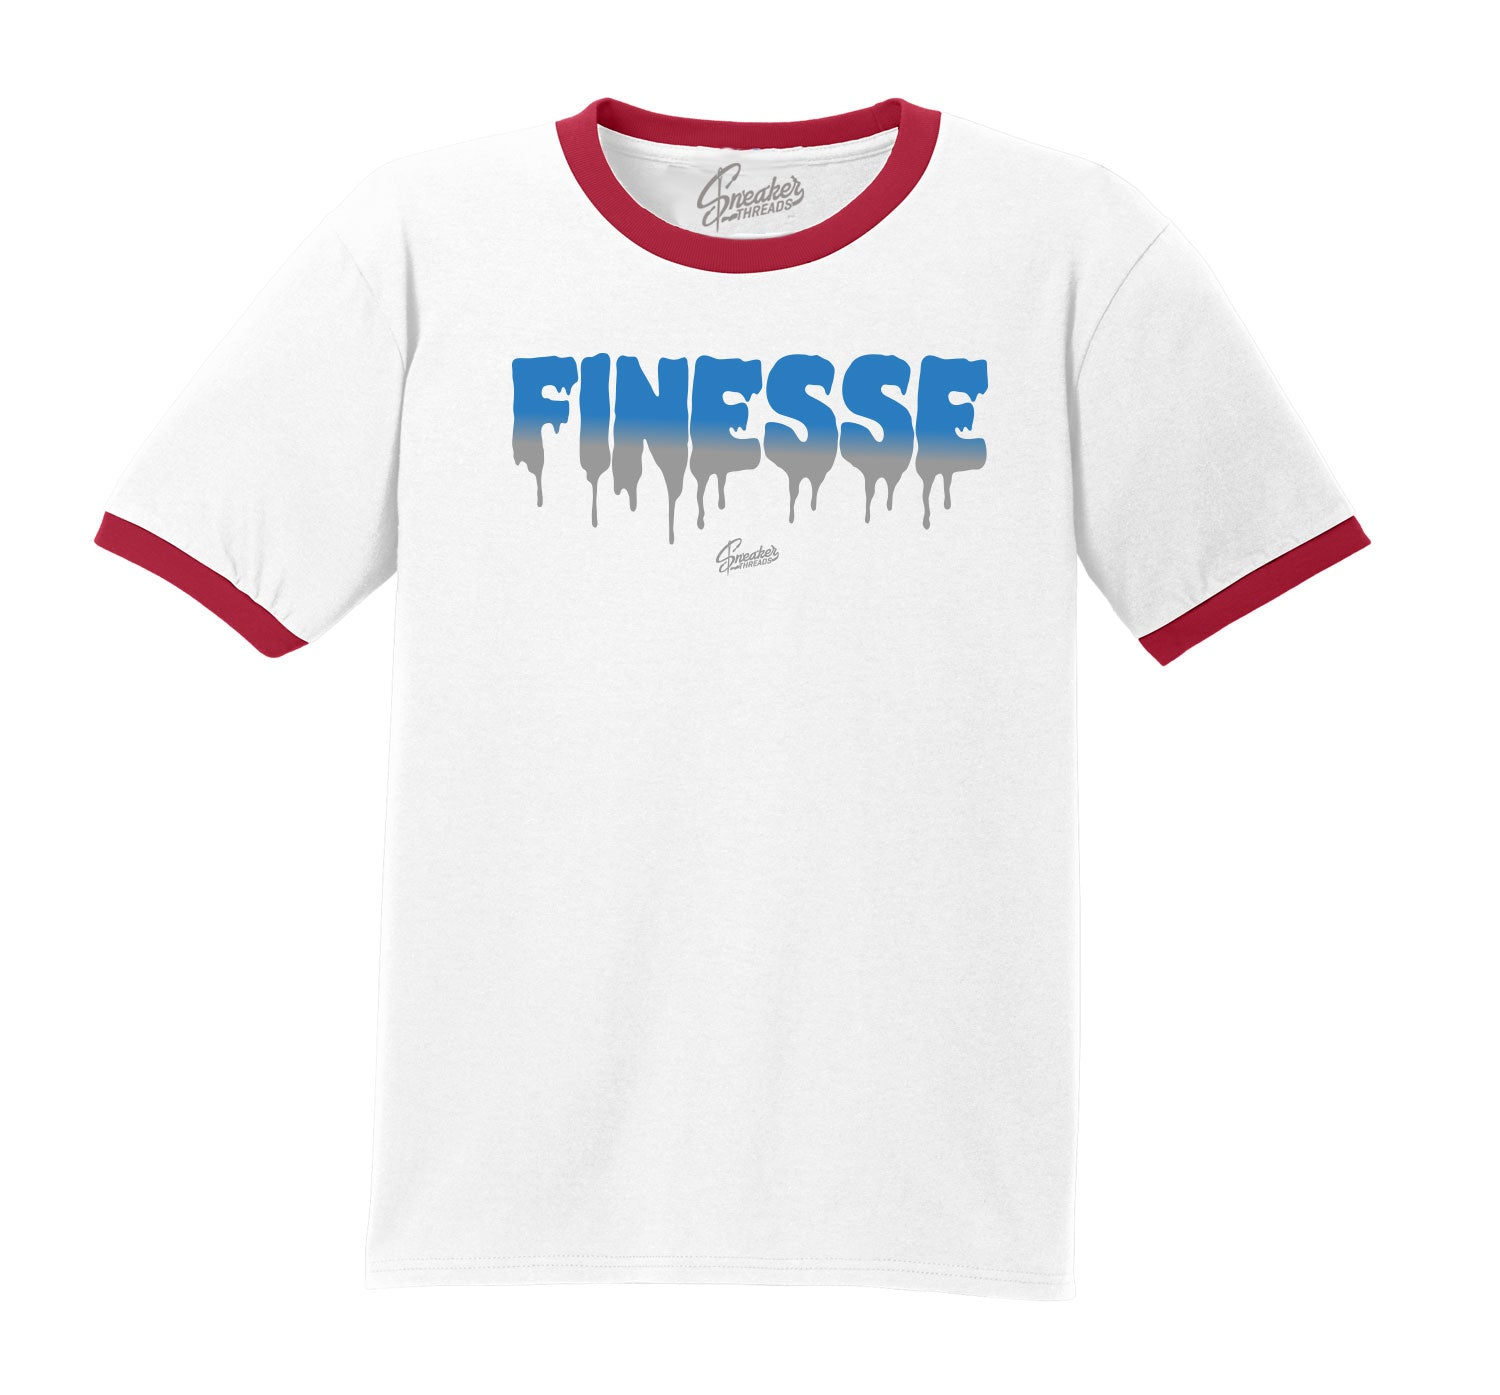 Jordan 4 What The Four Ringer Shirt - Finesse - White